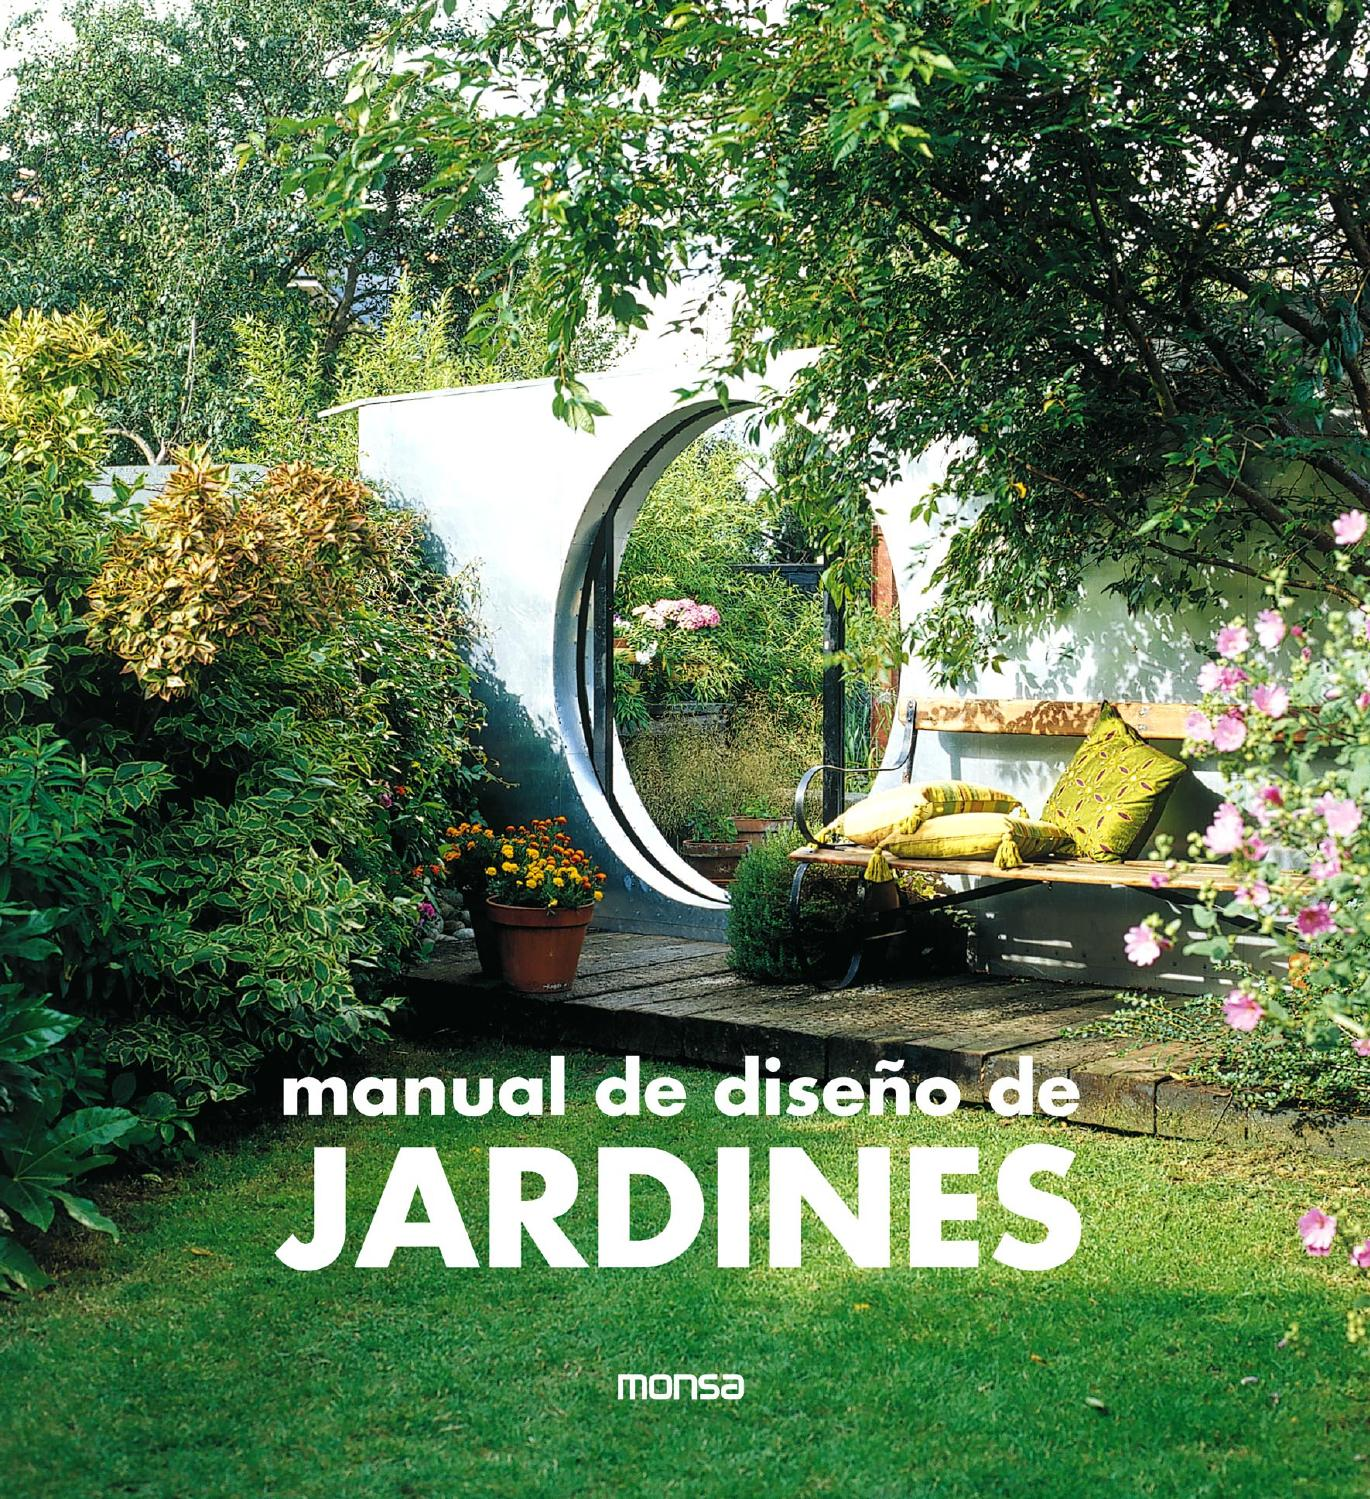 Manual de dise o de jardines by monsa publications issuu for Diseno de jardines lima